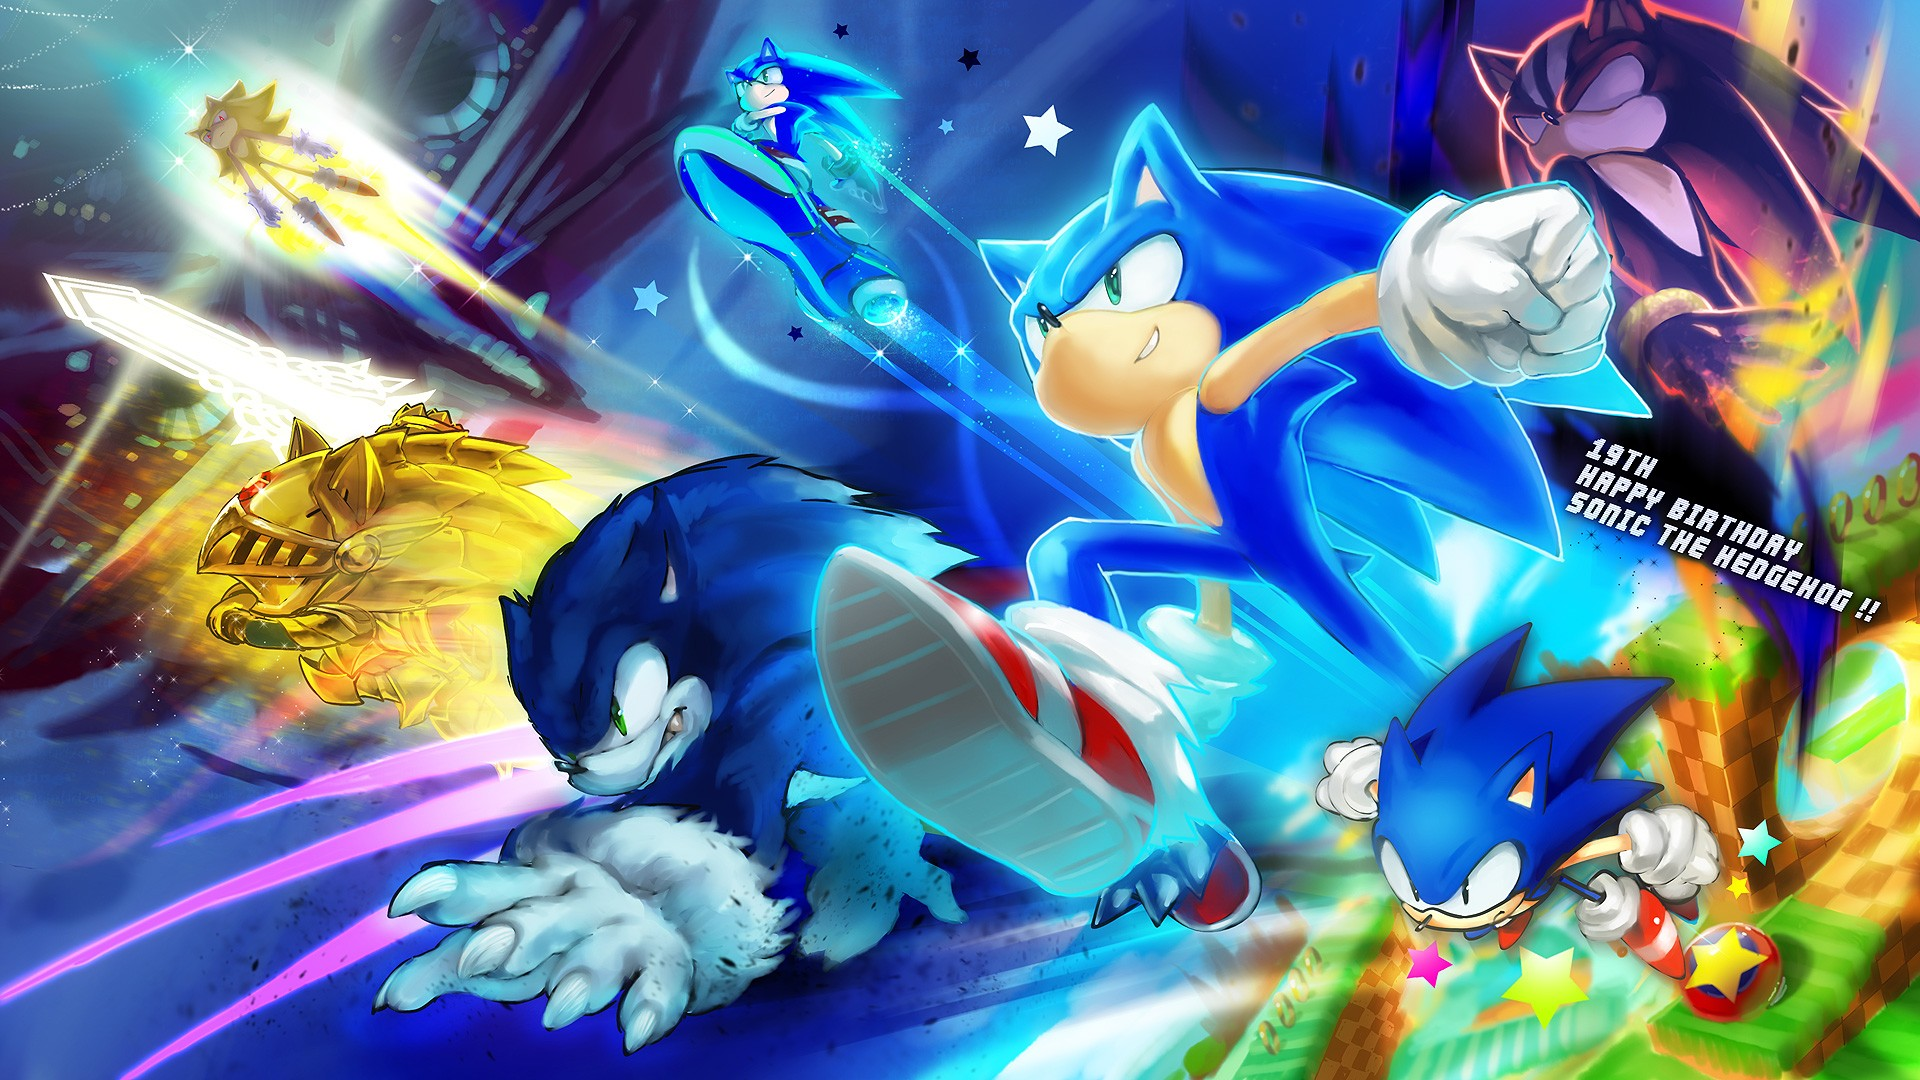 sonic-hd-http-gadgets-saqibsomal-com-gaming-sega-collection-for-3ds-contains-wallpaper-wp36010673